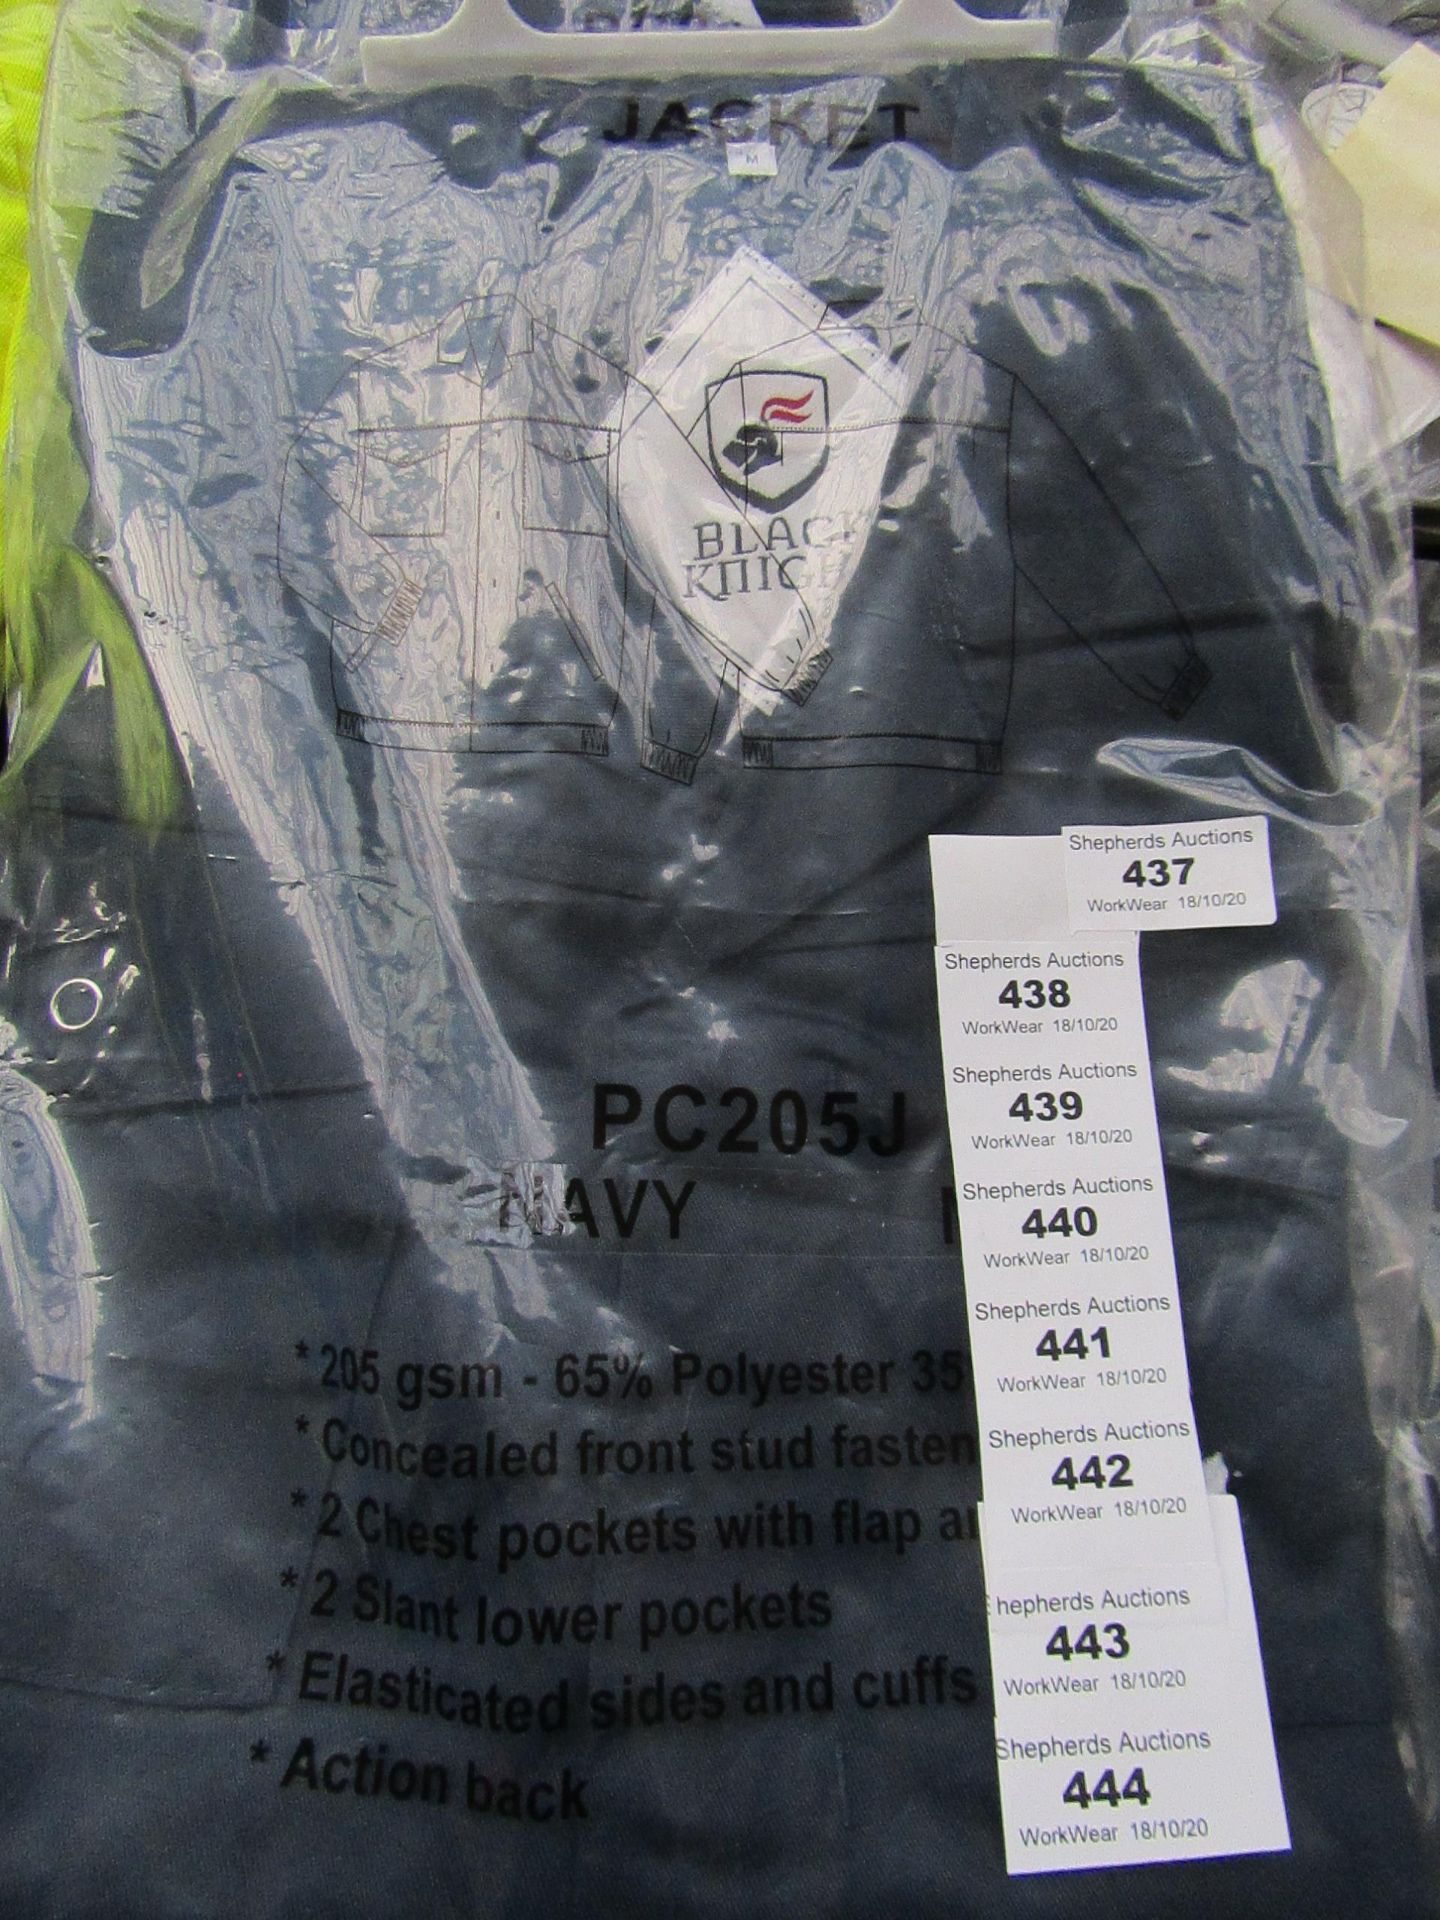 Lot 437 - Black Knight - Navy Jacket - Size Medium - Unused & Packaged.